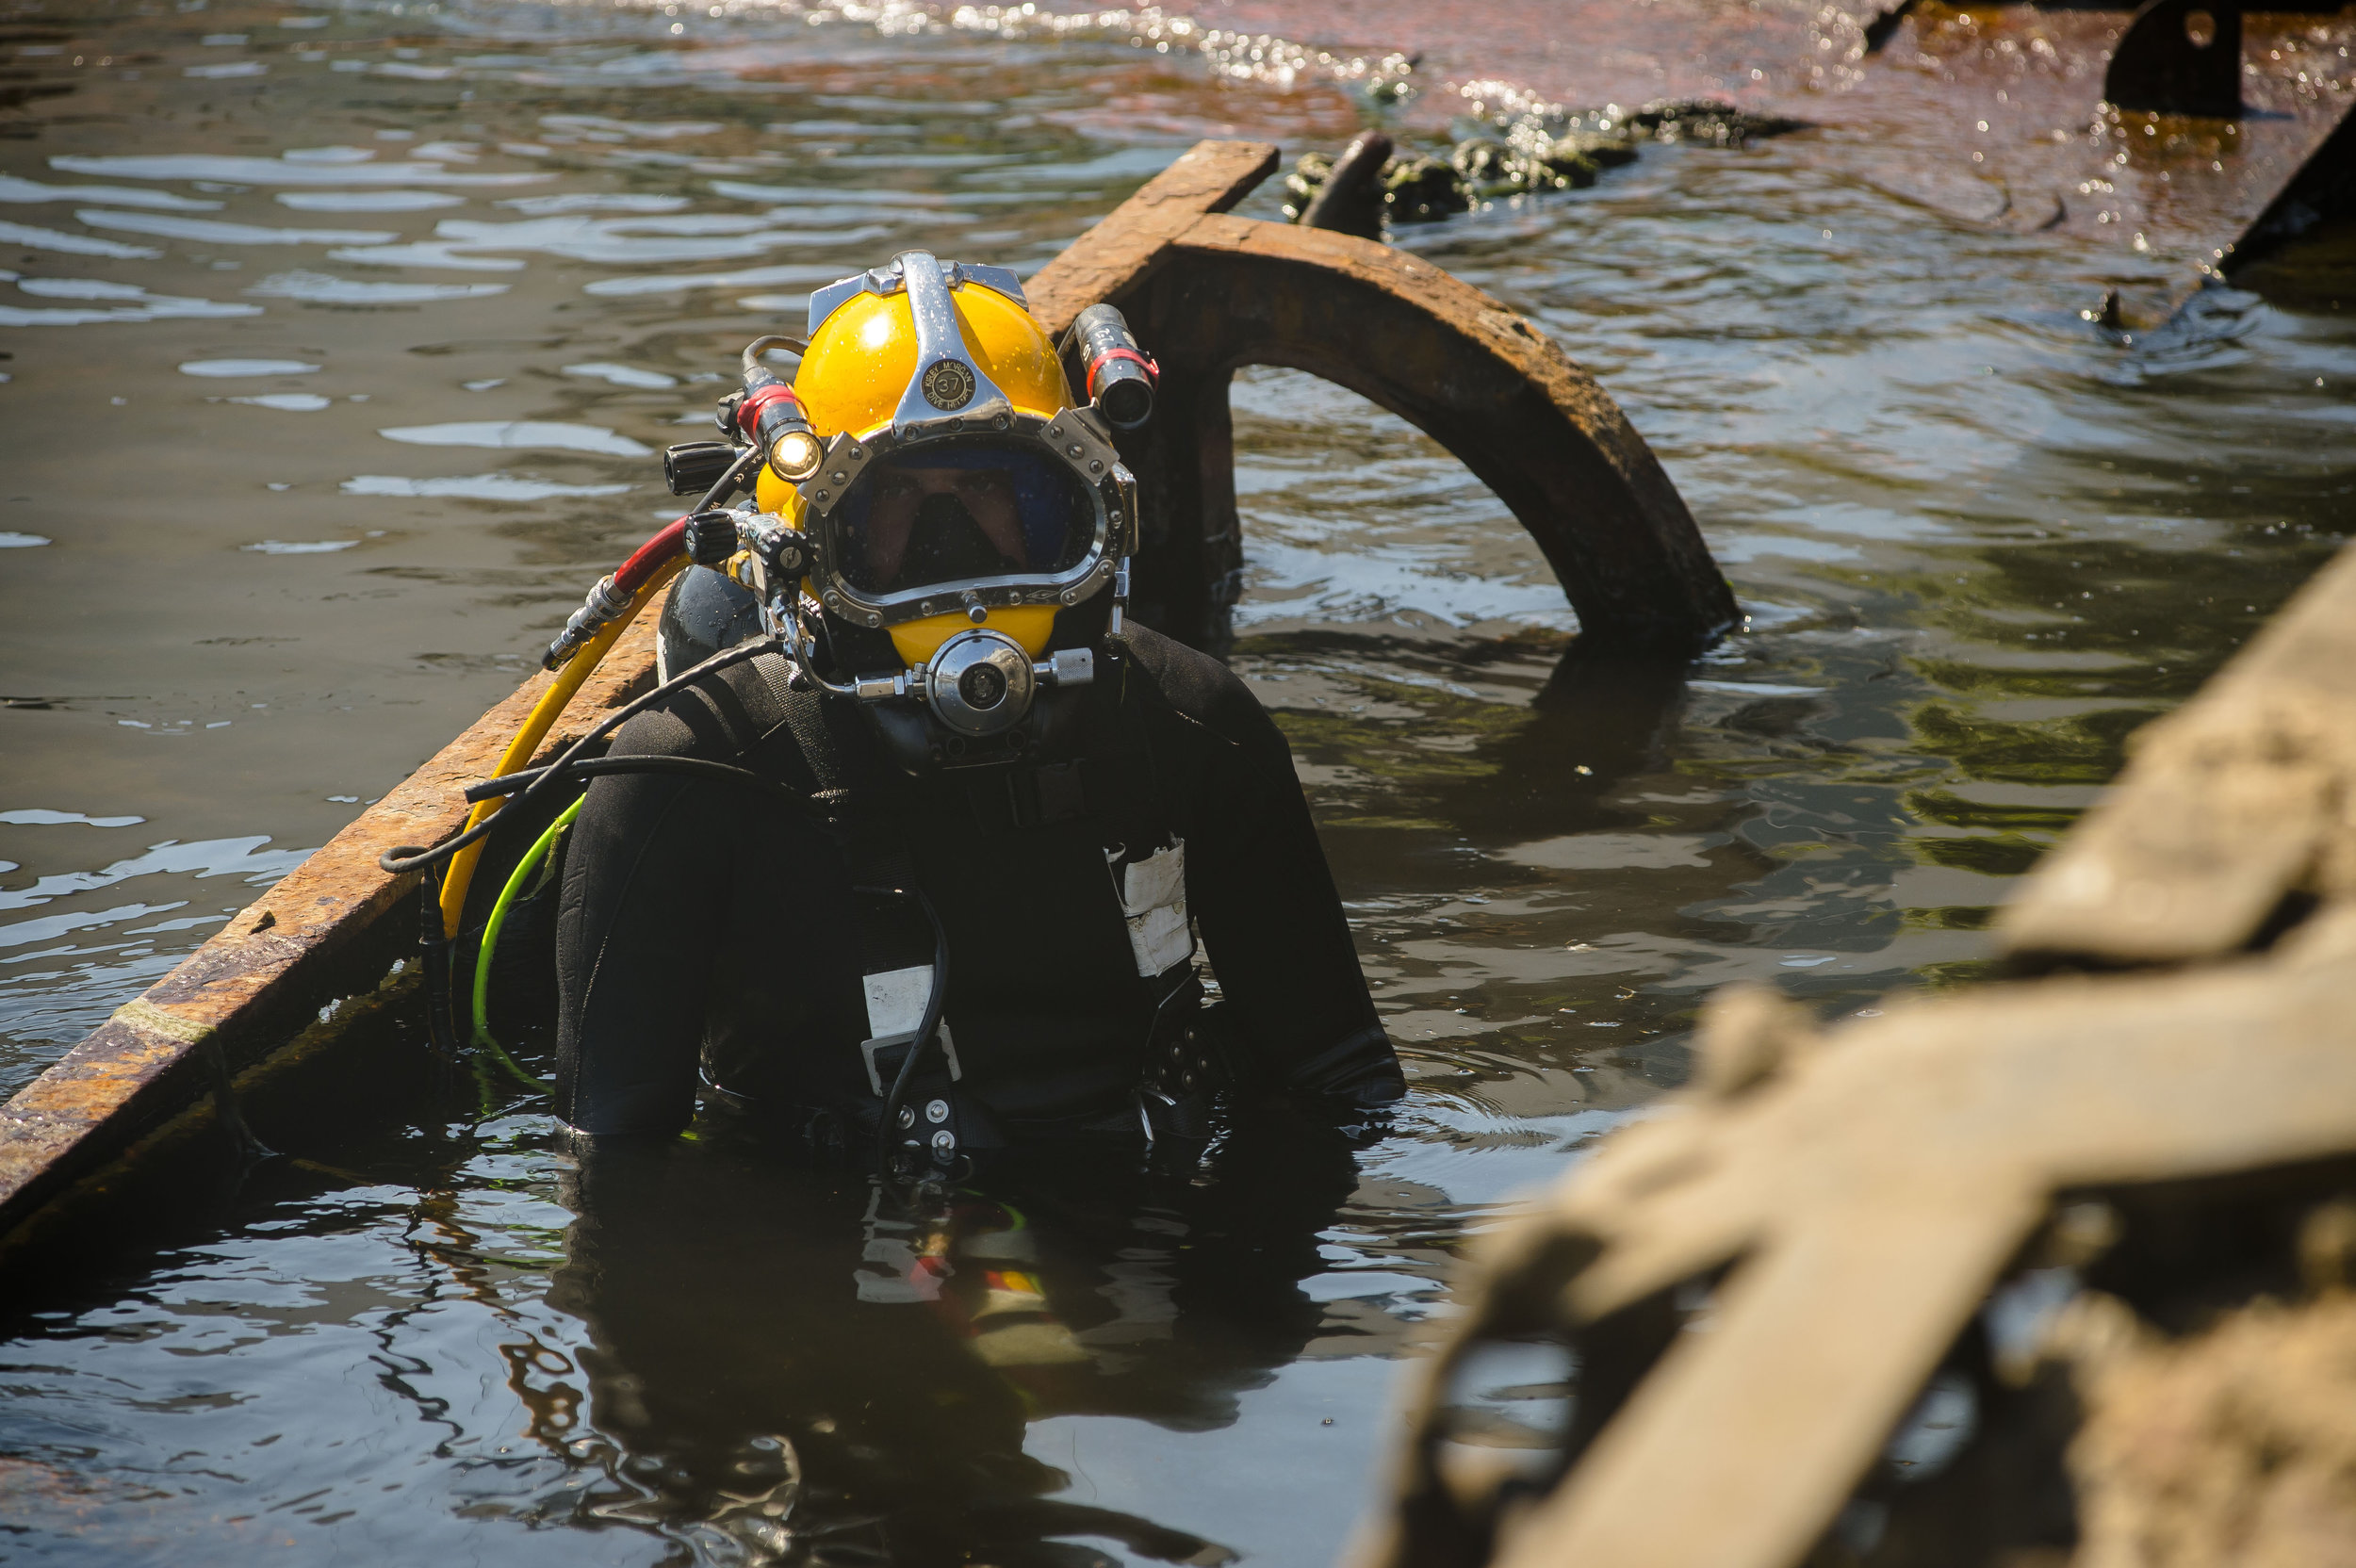 navy diver standing in water with full gear